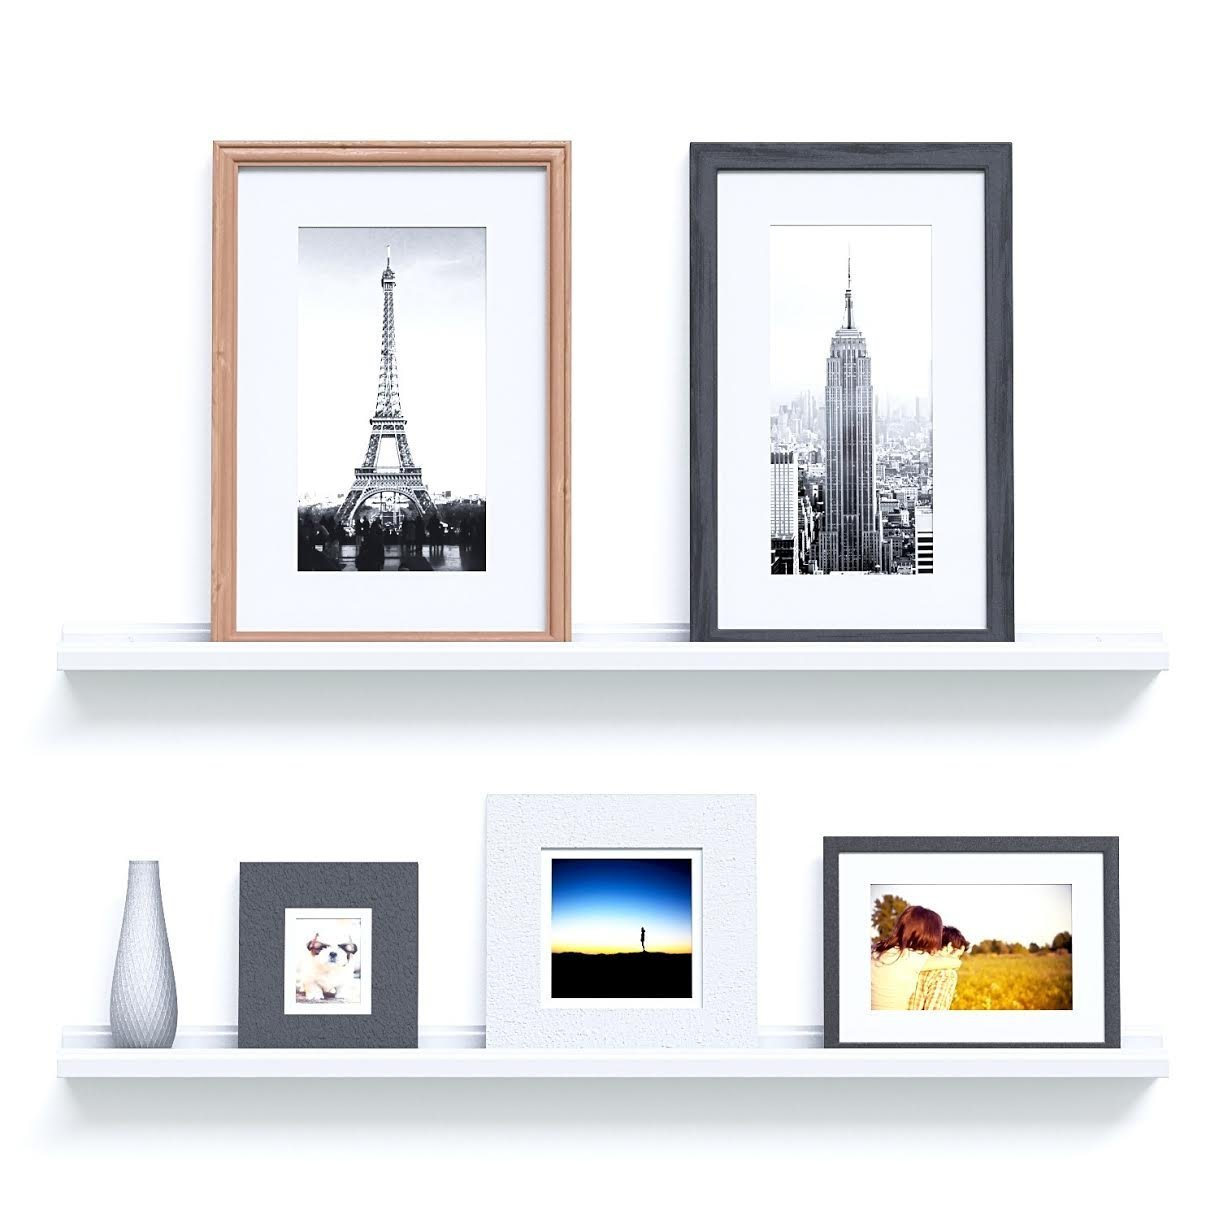 46 Inches Floating Picture Display Ledge Wall Mount Shelf Denver Modern Design - White